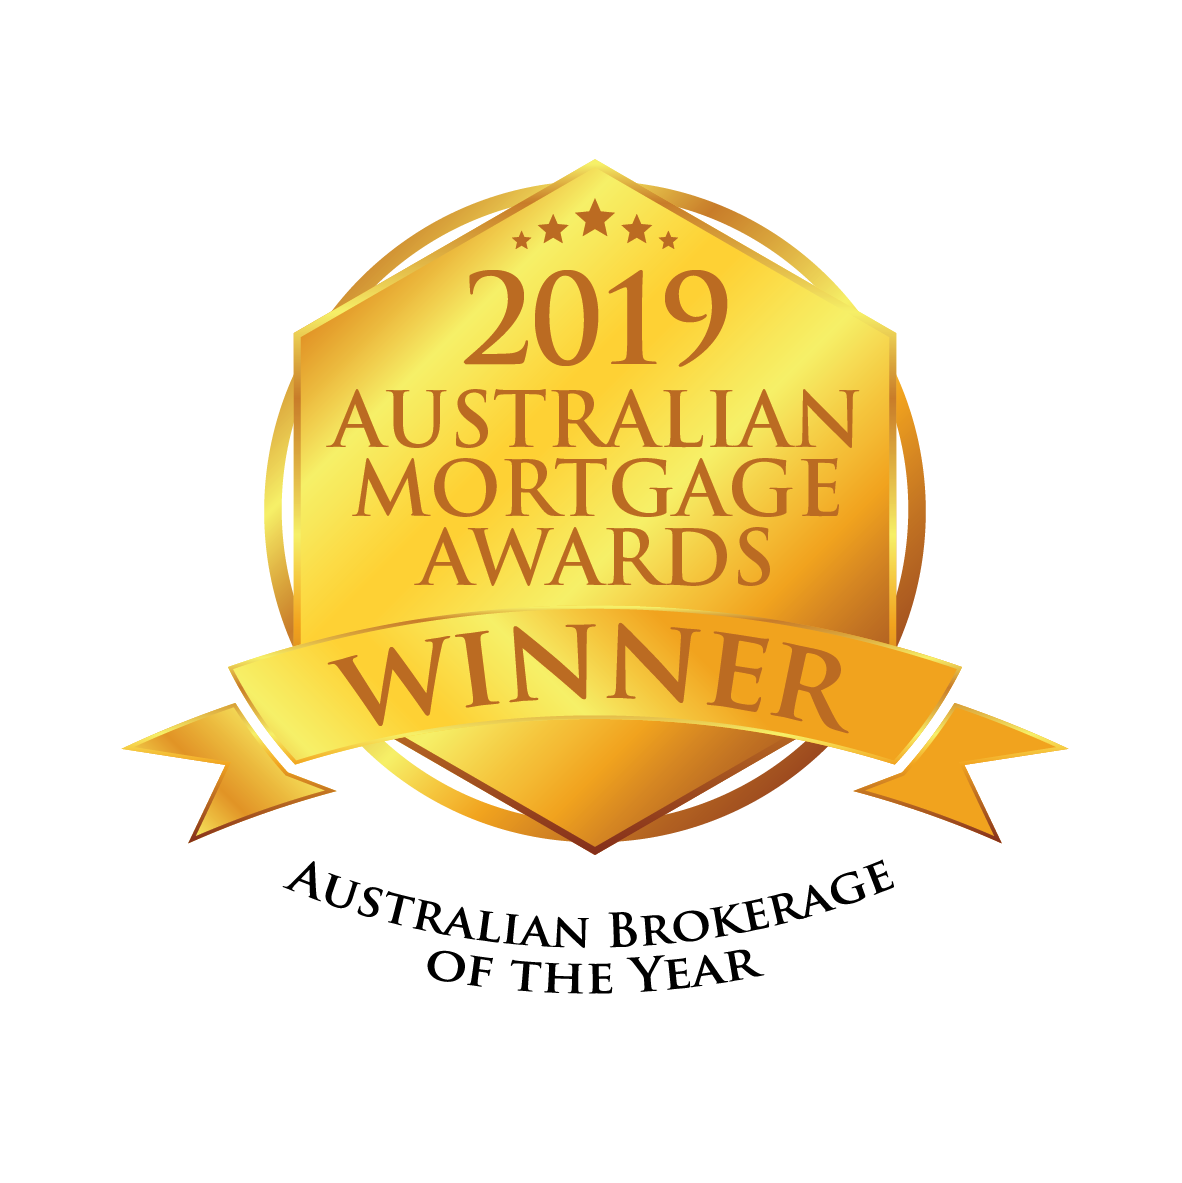 Australian Mortgage Awards 2019 Winner Seal